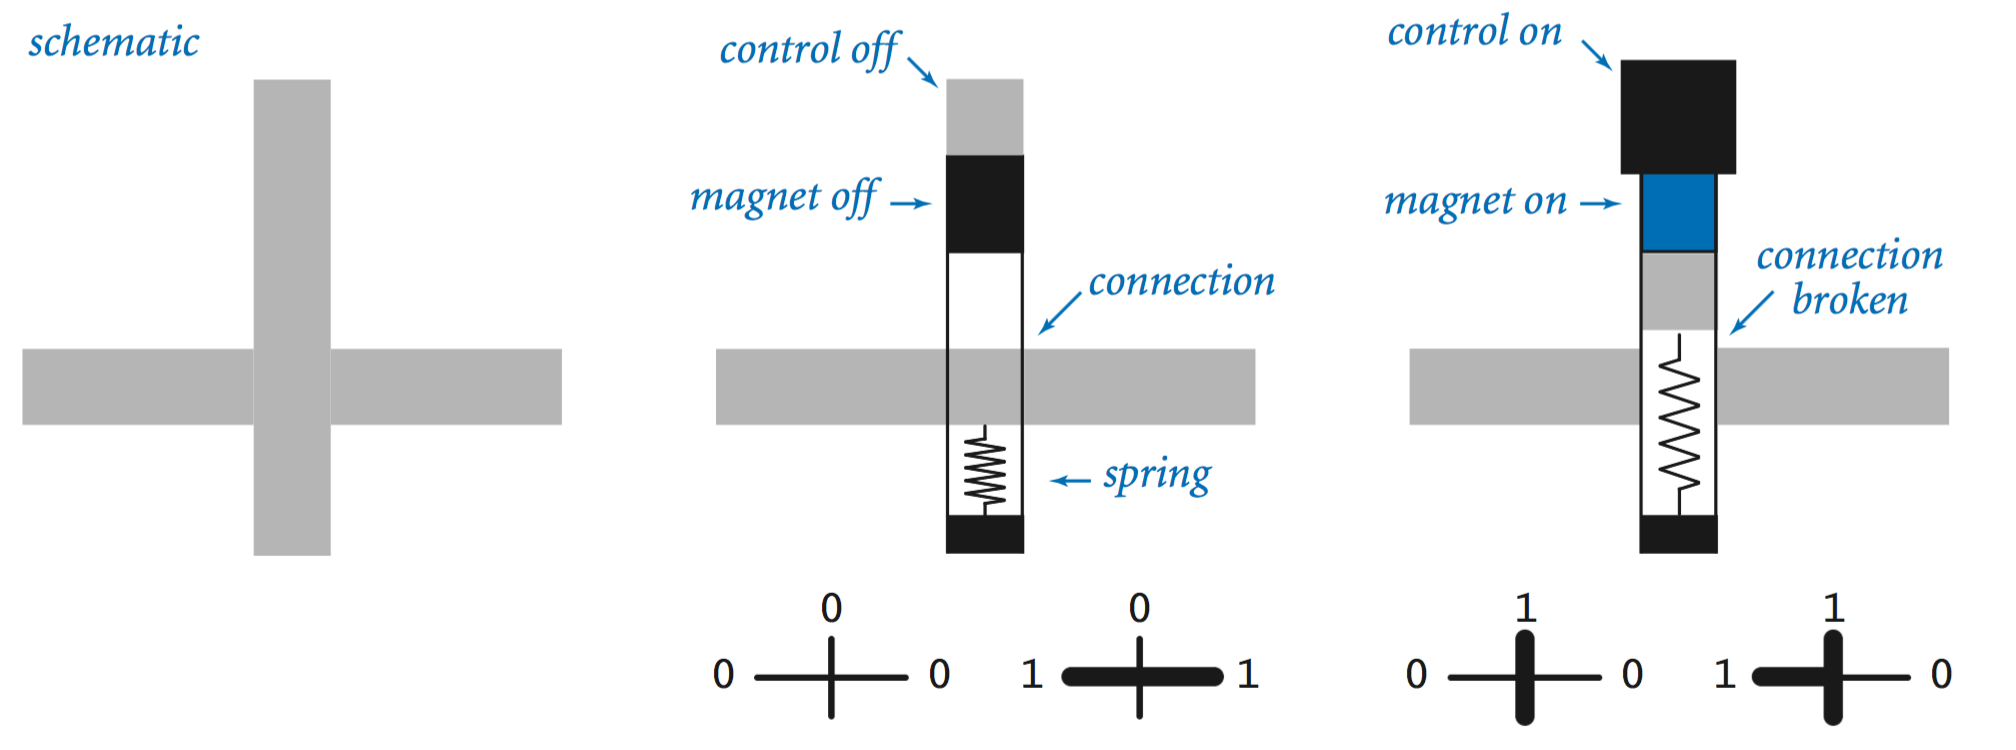 Basic Circuit Model Relay Analysis Anatomy Of A Controlled Switch